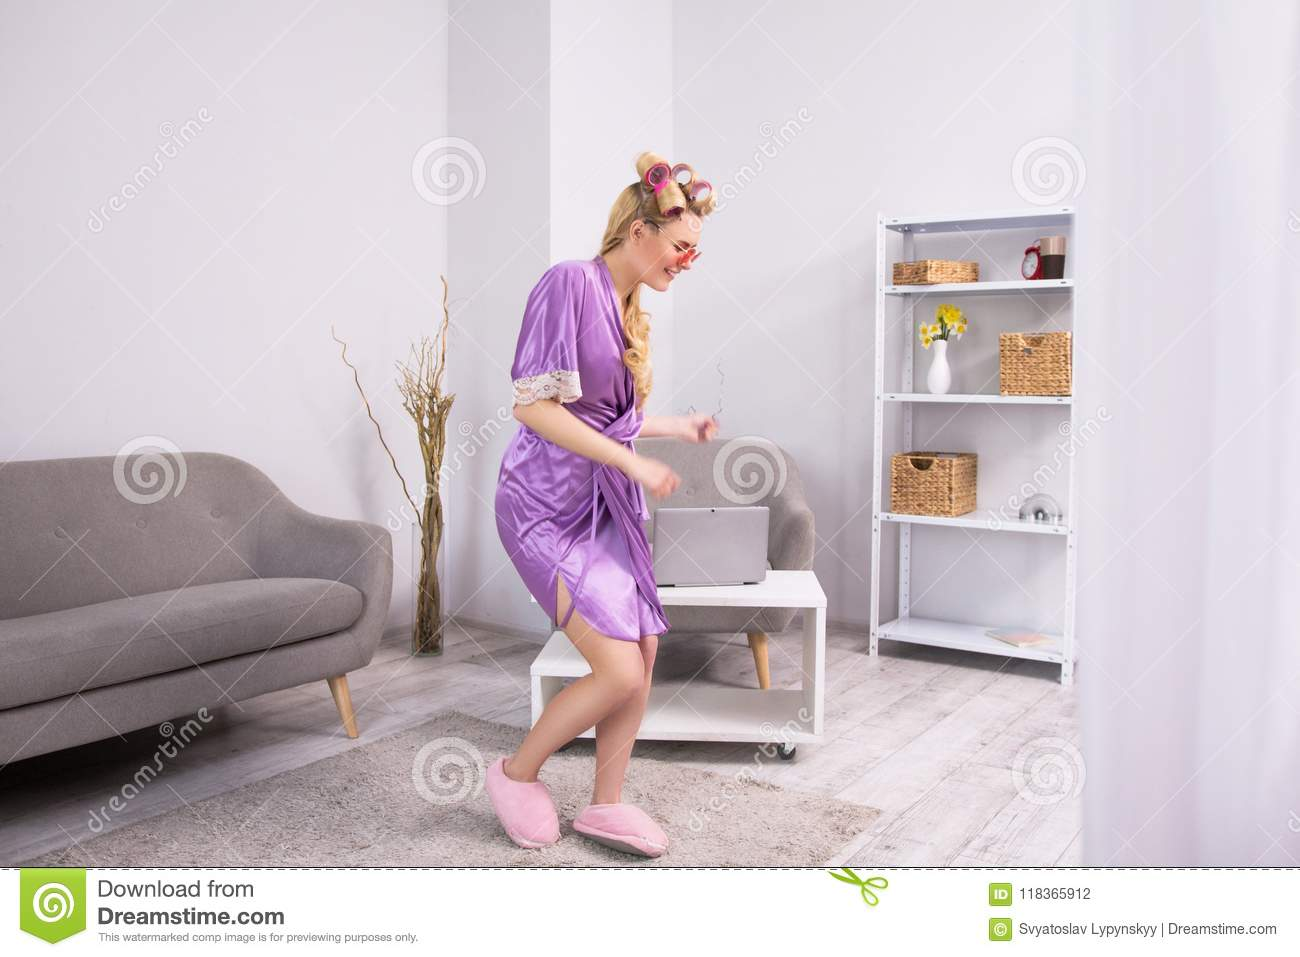 Girl dancing in living room.